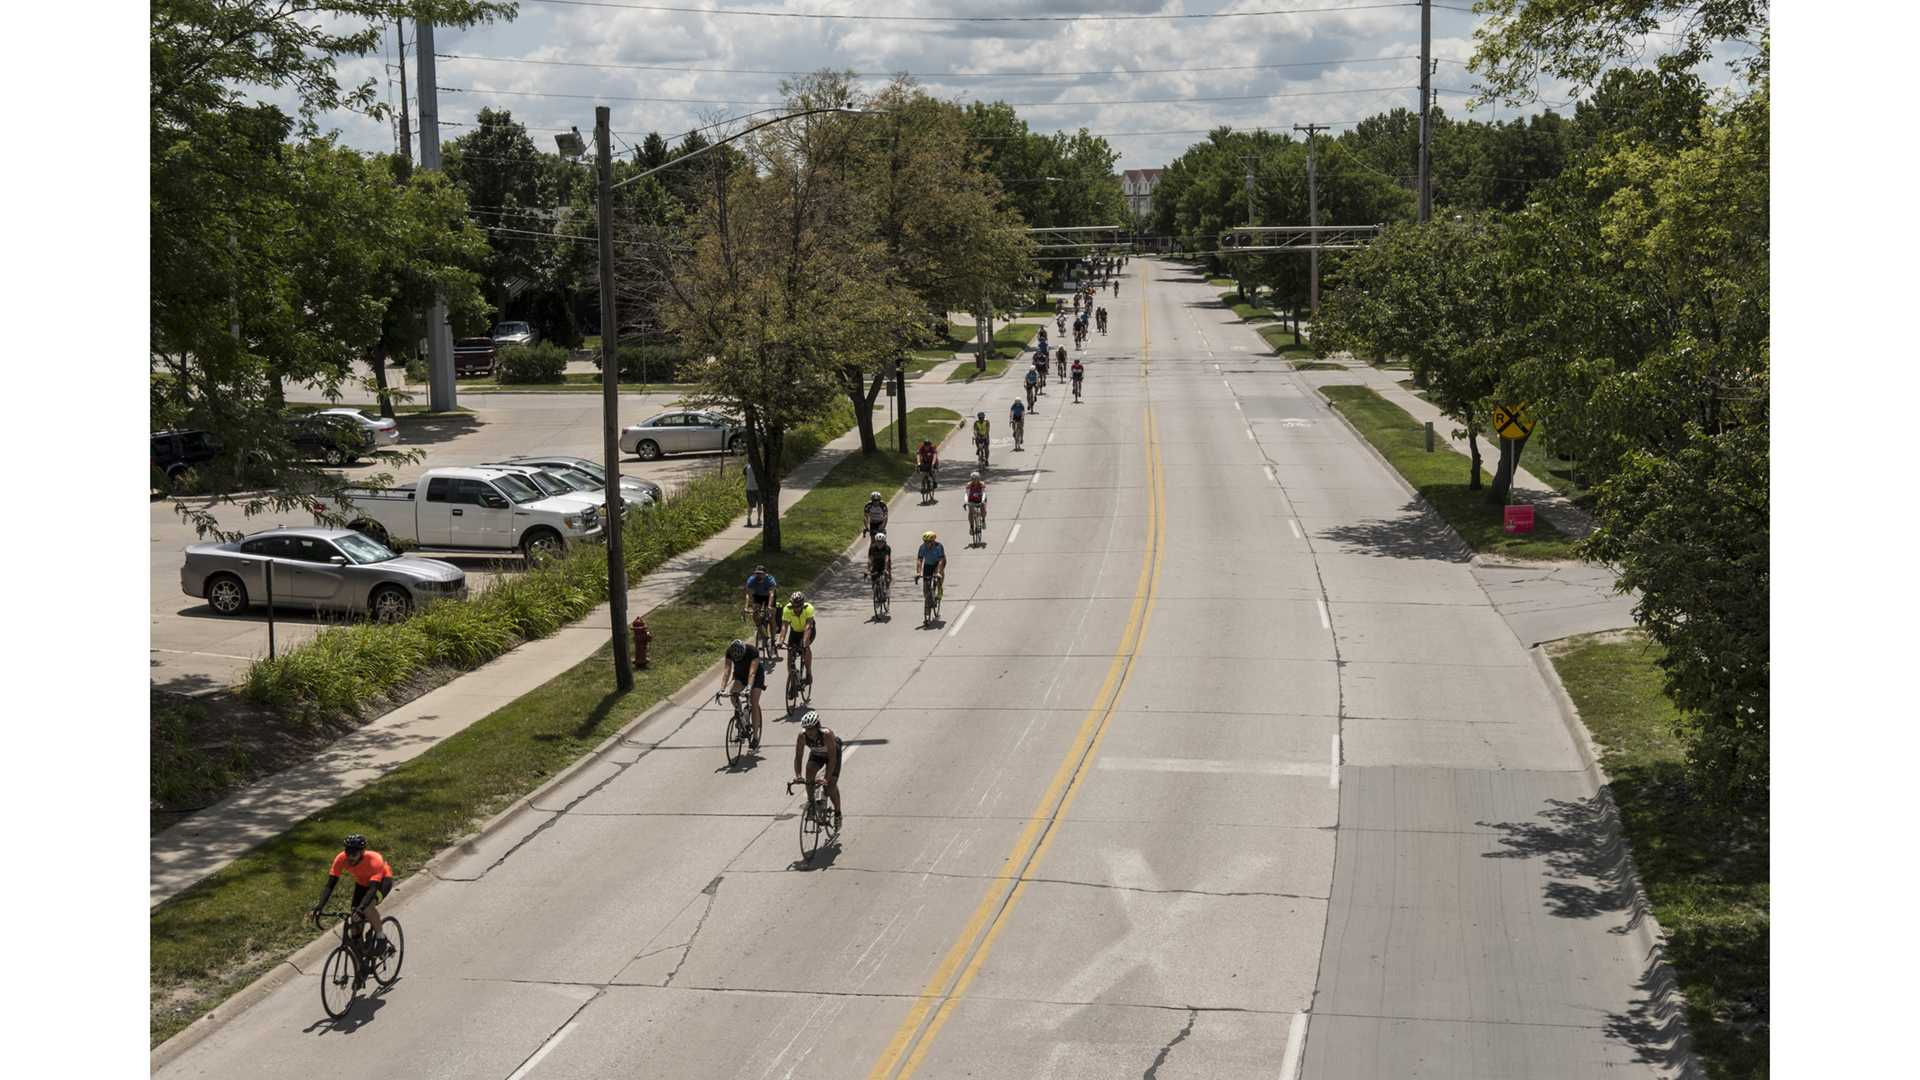 Cyclists ride on Gilbert Street in Iowa City, Iowa during RAGBRAI on Friday, July 27, 2018. Riders rode from Sigourney to Iowa City on Day 6 of this years ride. (Nick Rohlman/The Daily Iowan)